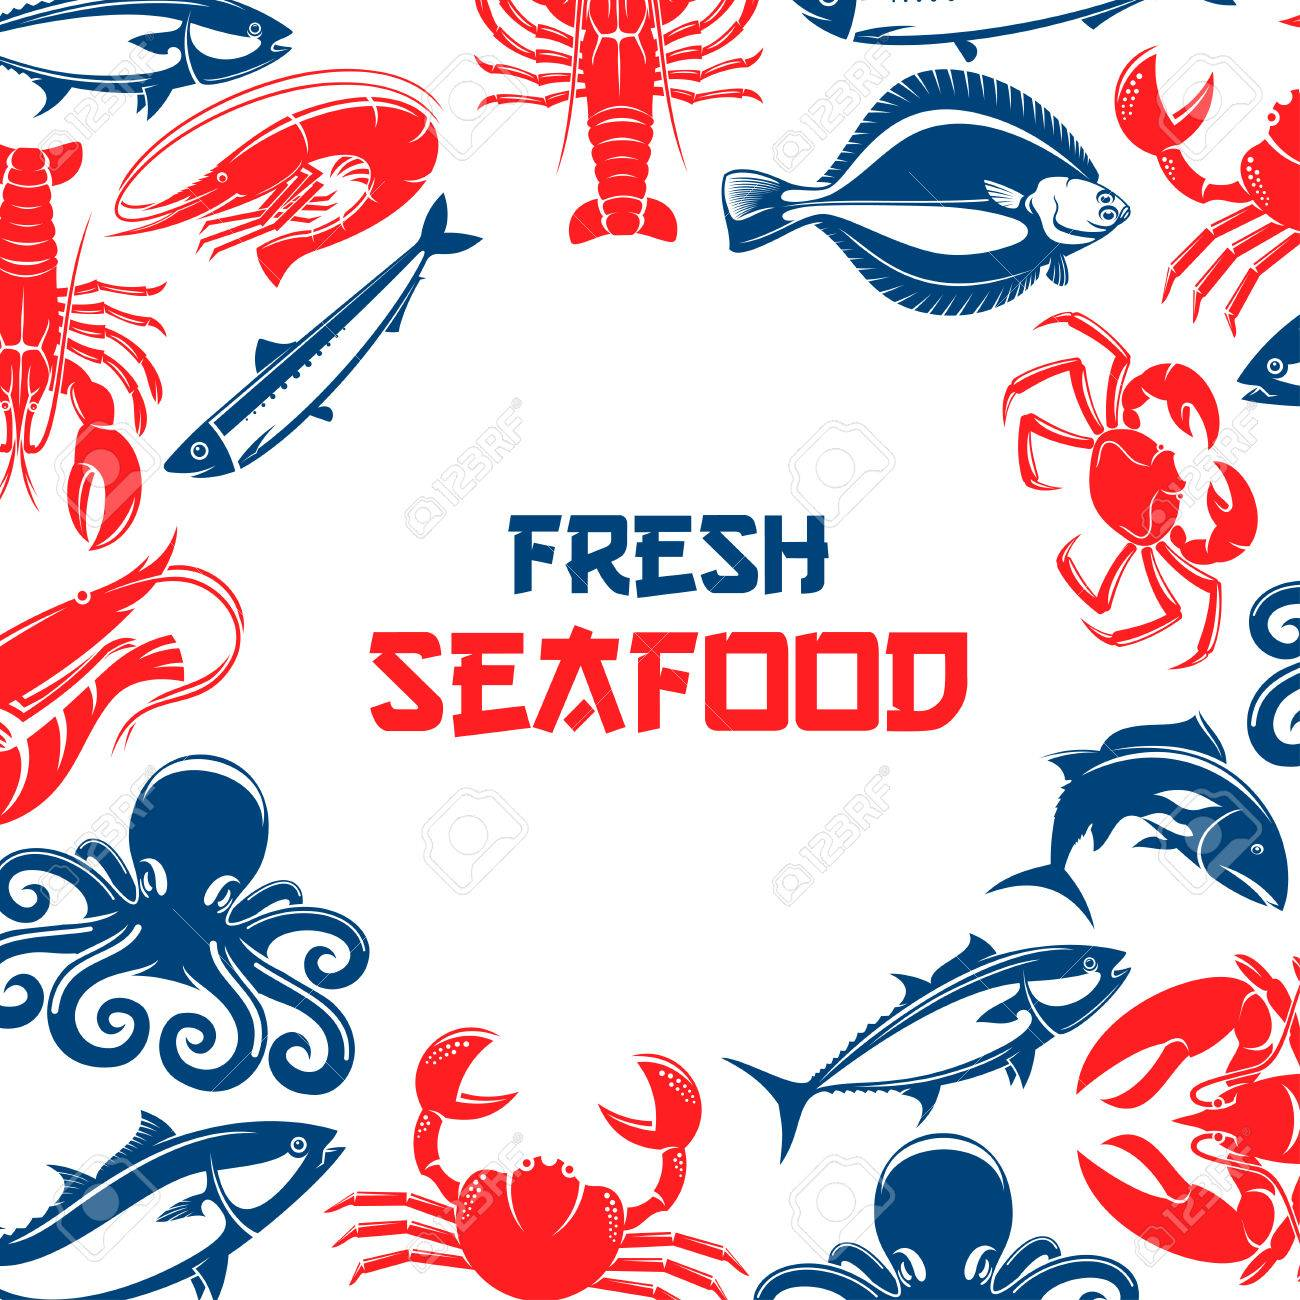 Poster For Seafood And Fish Food Restaurant Or Industry With Shrimp Crab Lobster Tuna